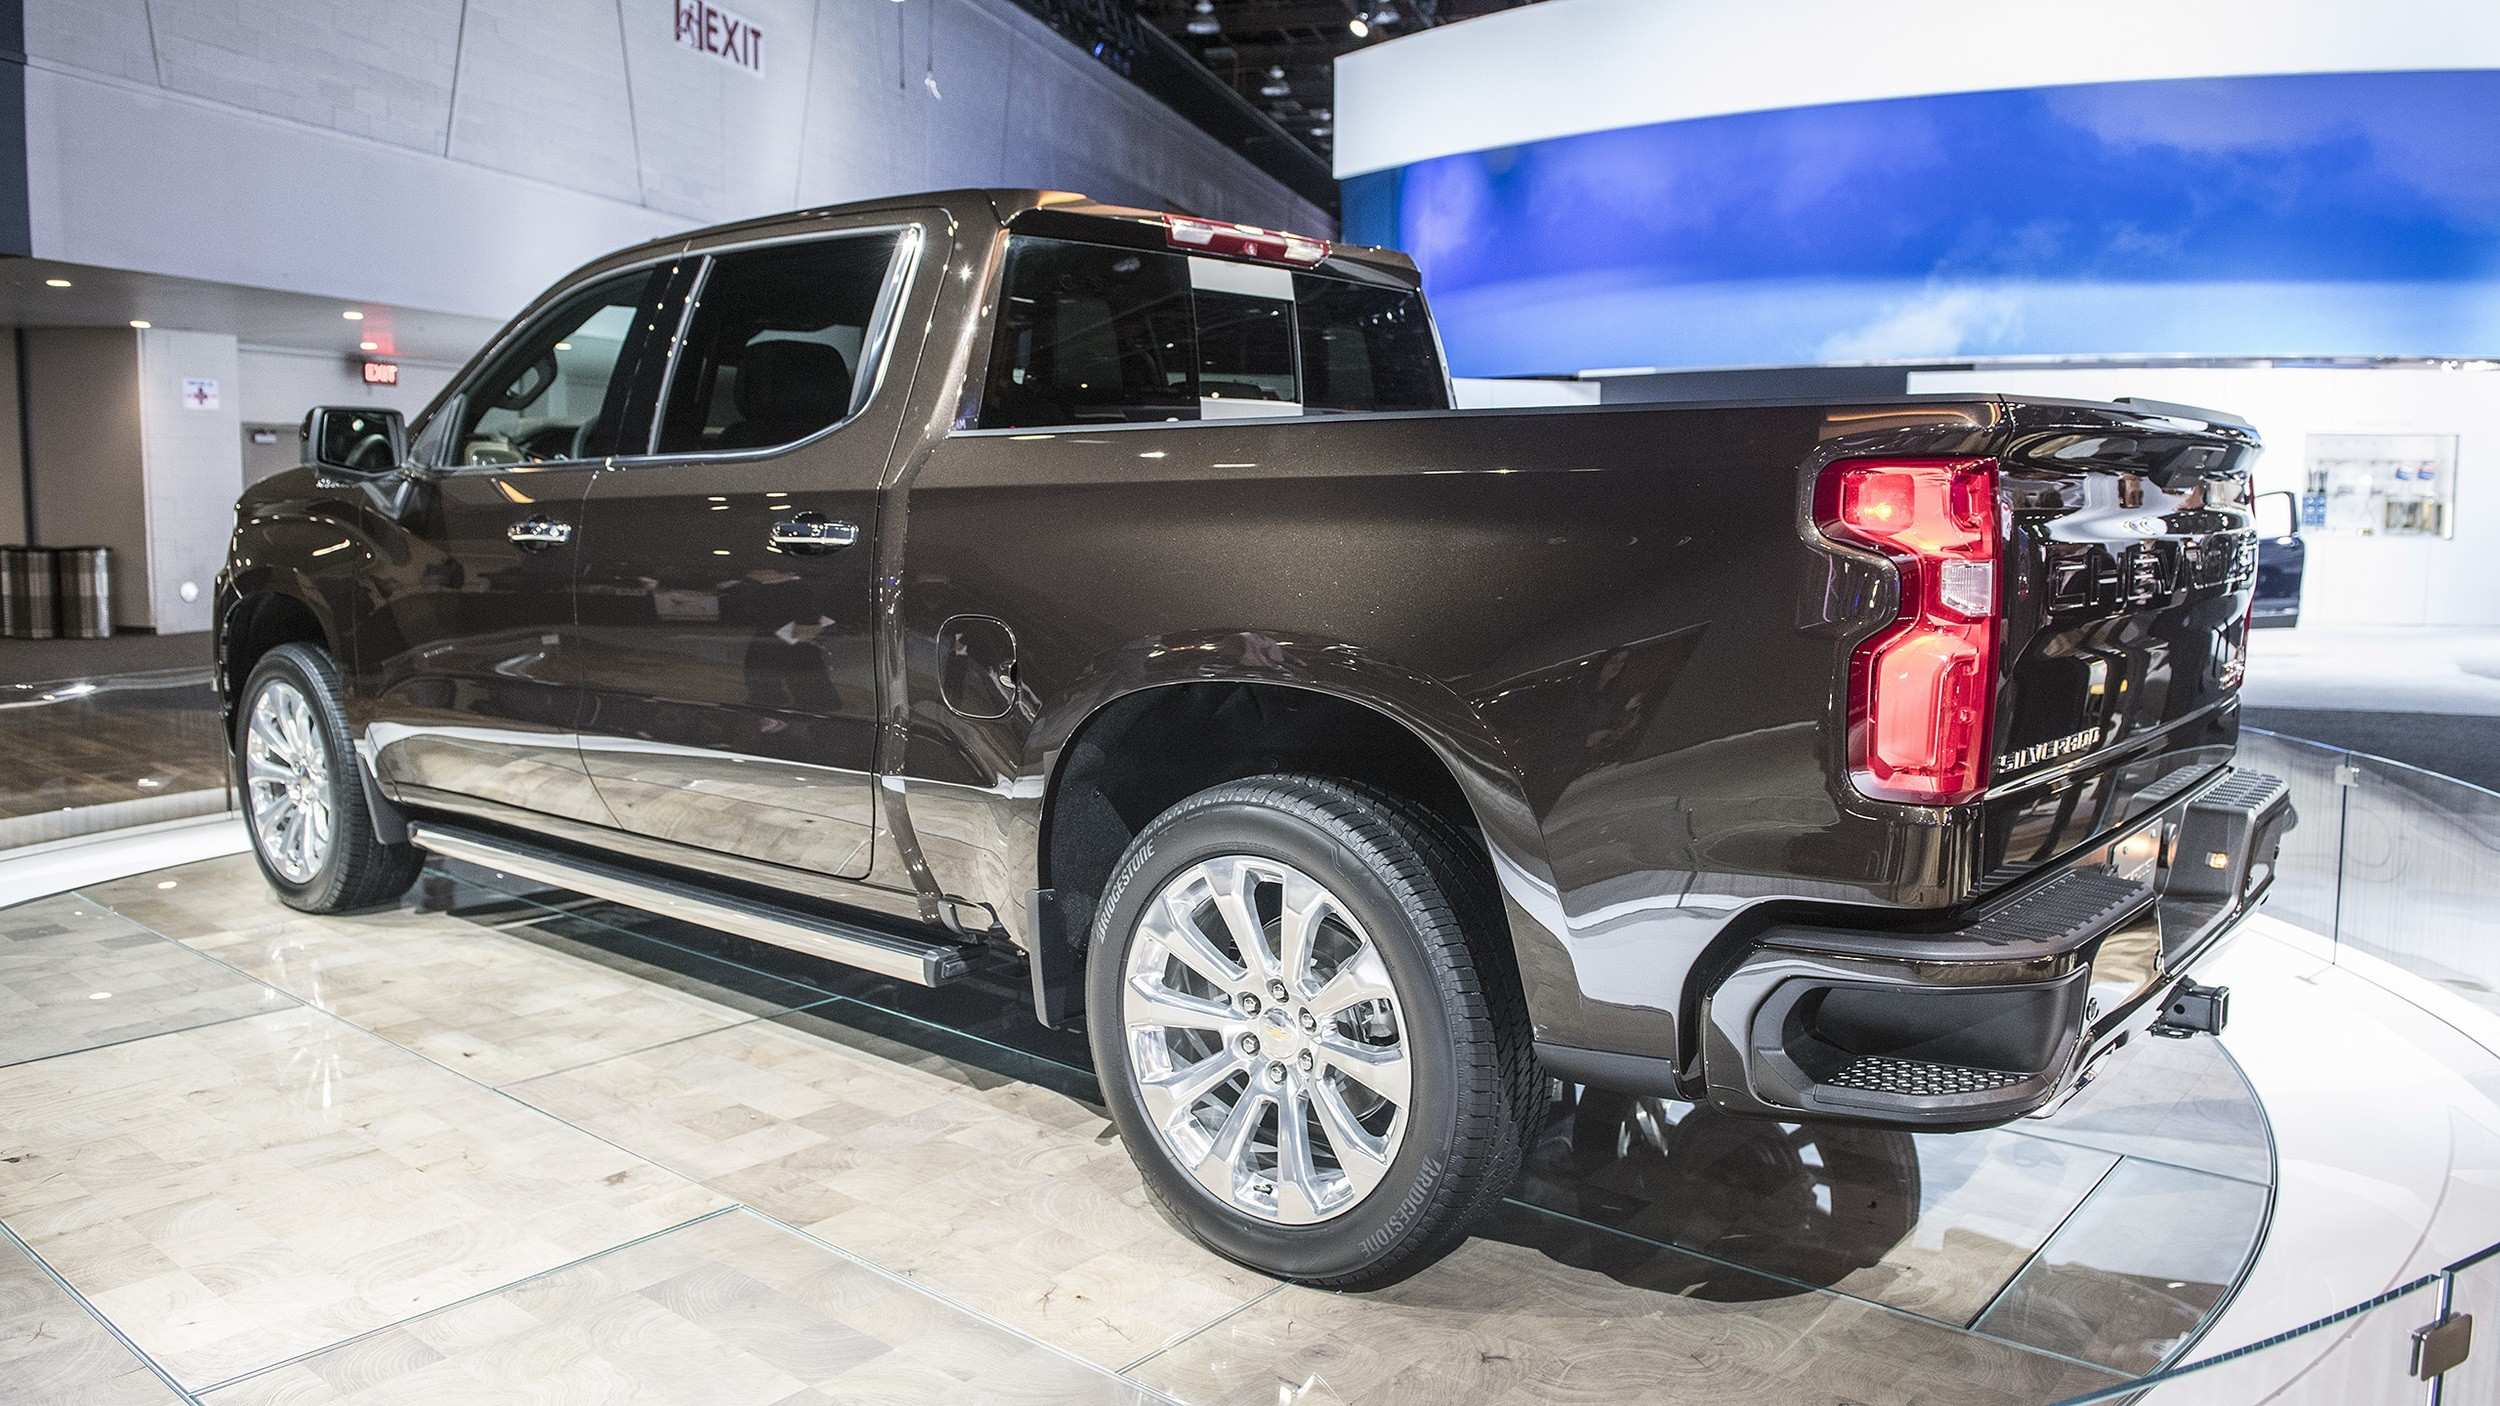 73 The Best High Country Chevrolet 2019 Price And Review Specs by Best High Country Chevrolet 2019 Price And Review